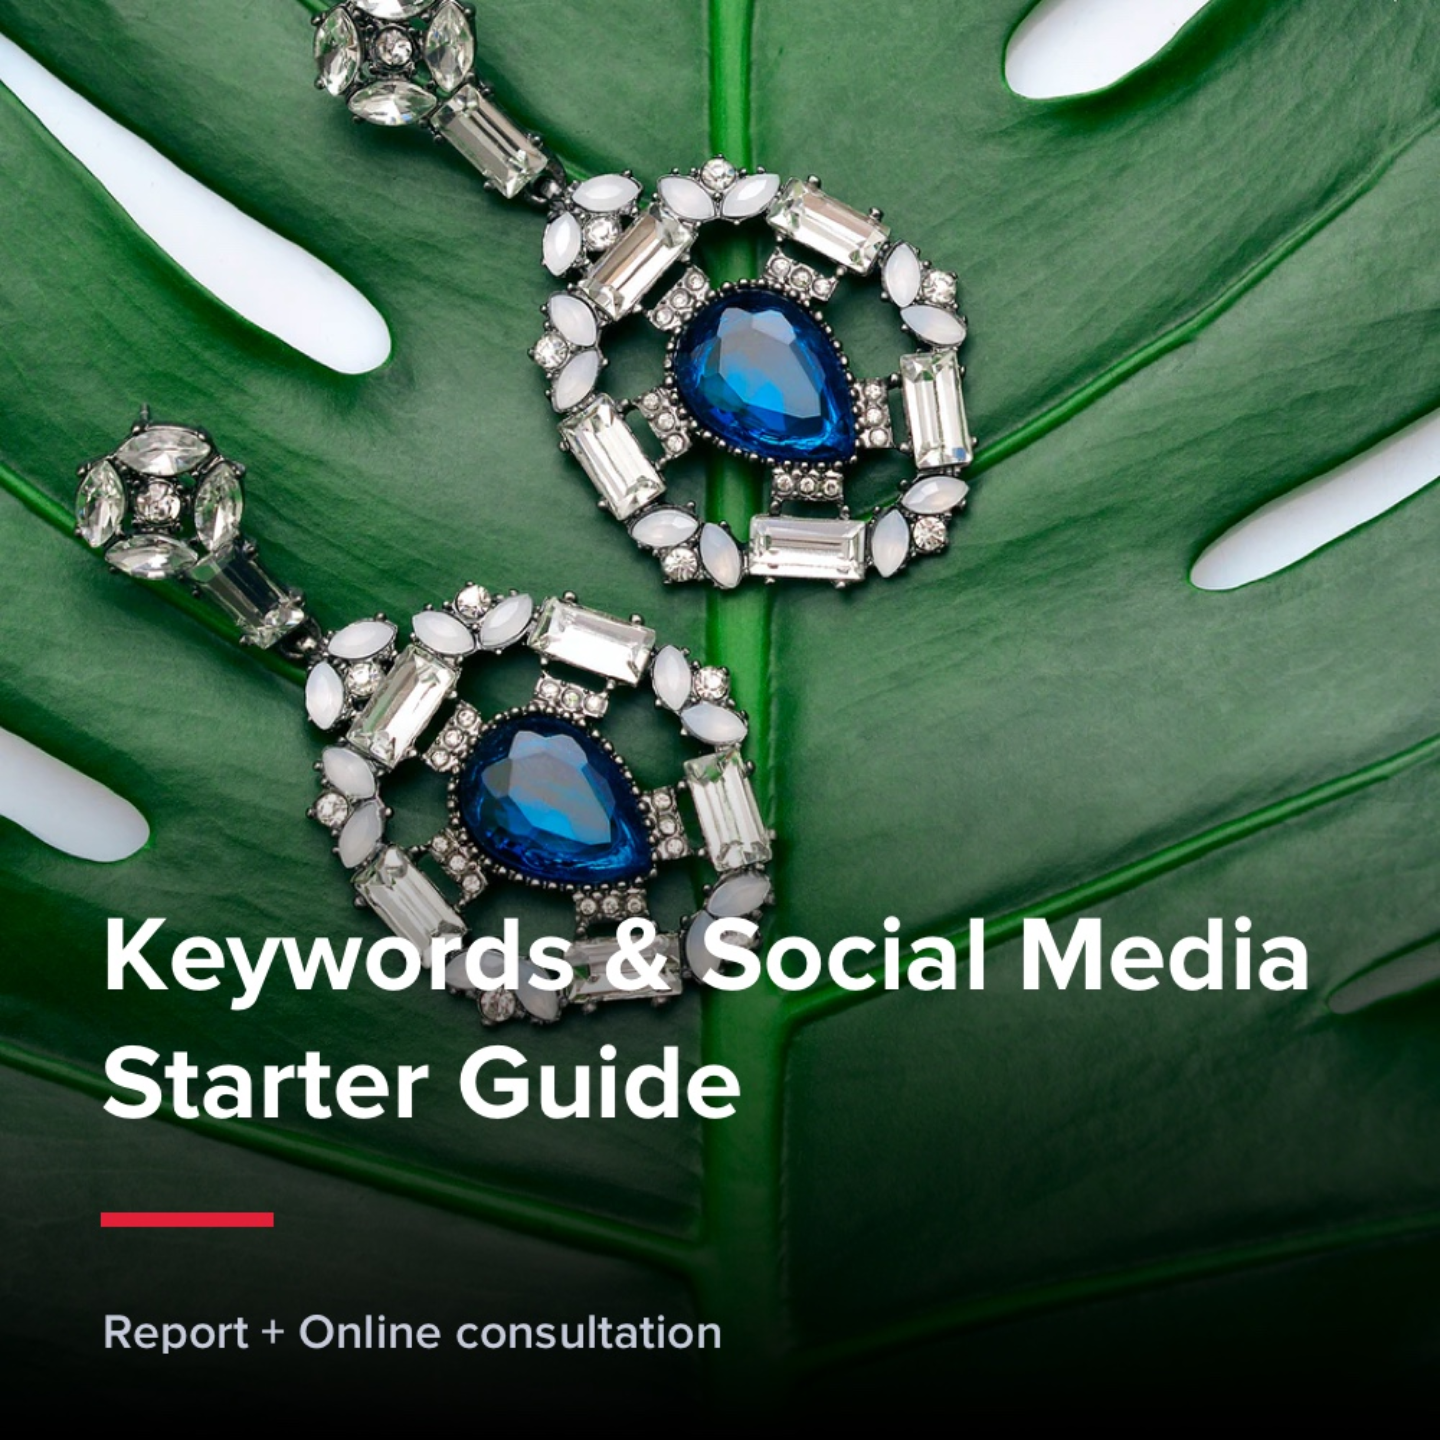 Keywords & Social Media Starter Guide - Jewellery & Accessories